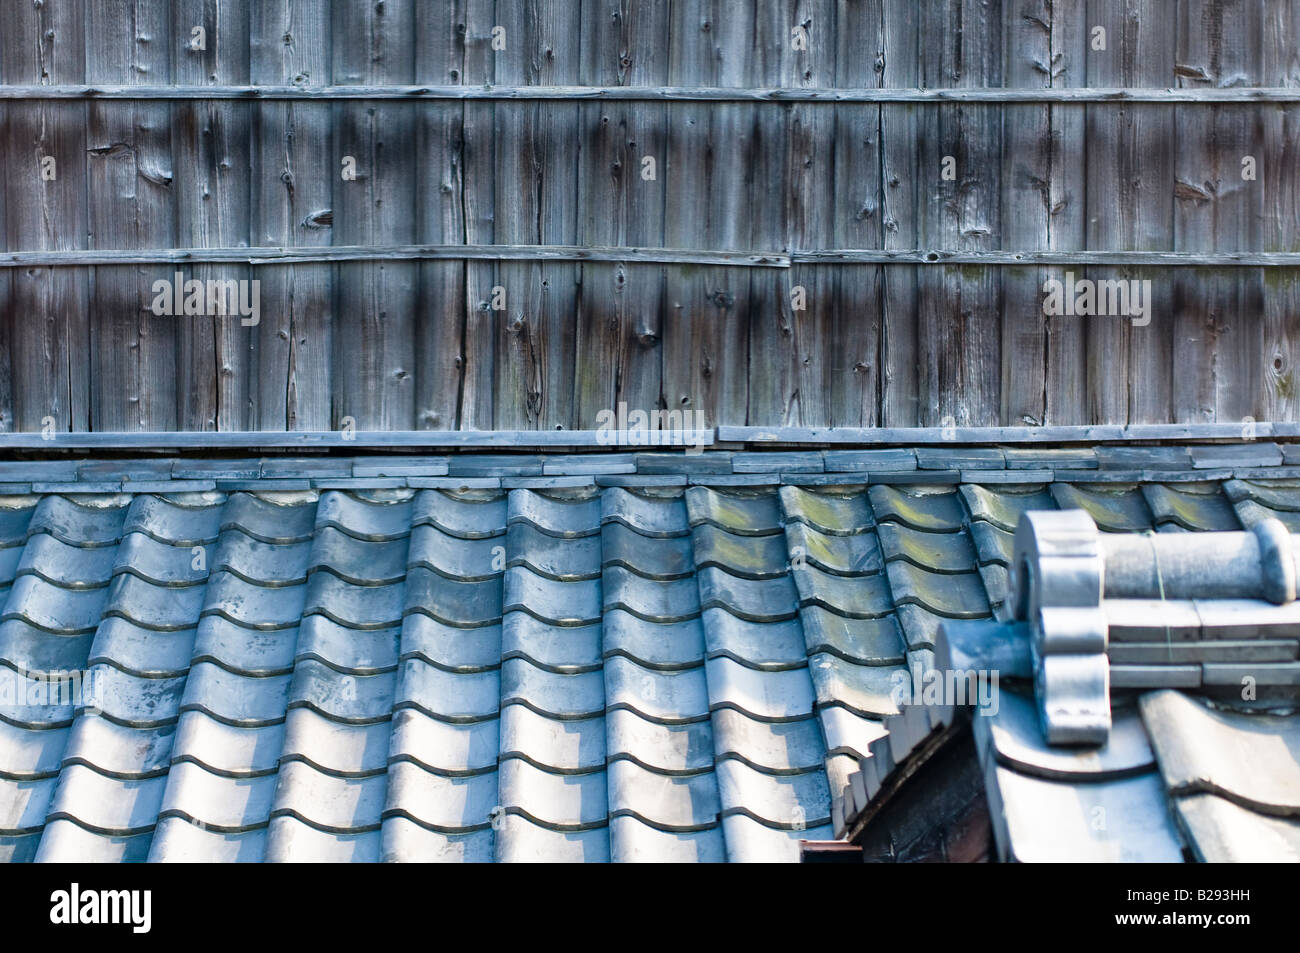 Traditional Japanese Ceramic Roof Tiles With Wooden